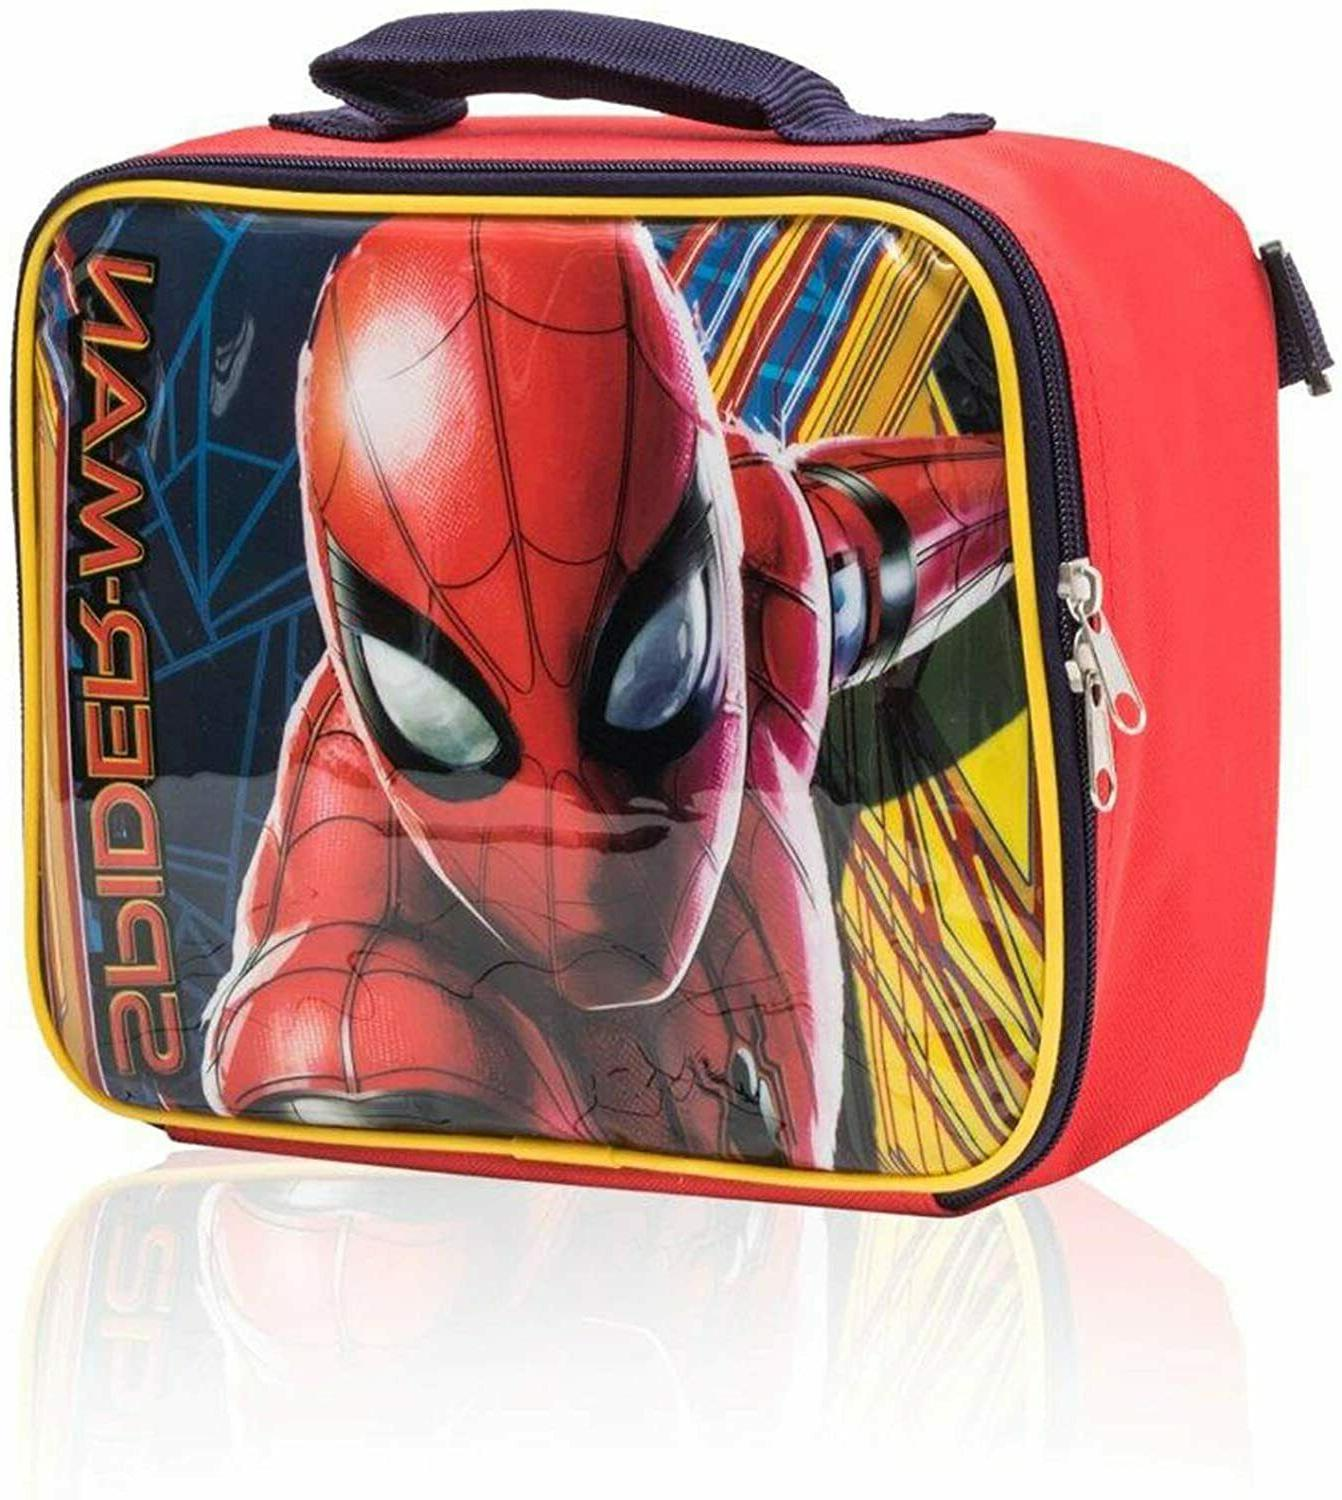 Marvel Spiderman Backpack Detachable Lunch Box 2 Piece - 16""